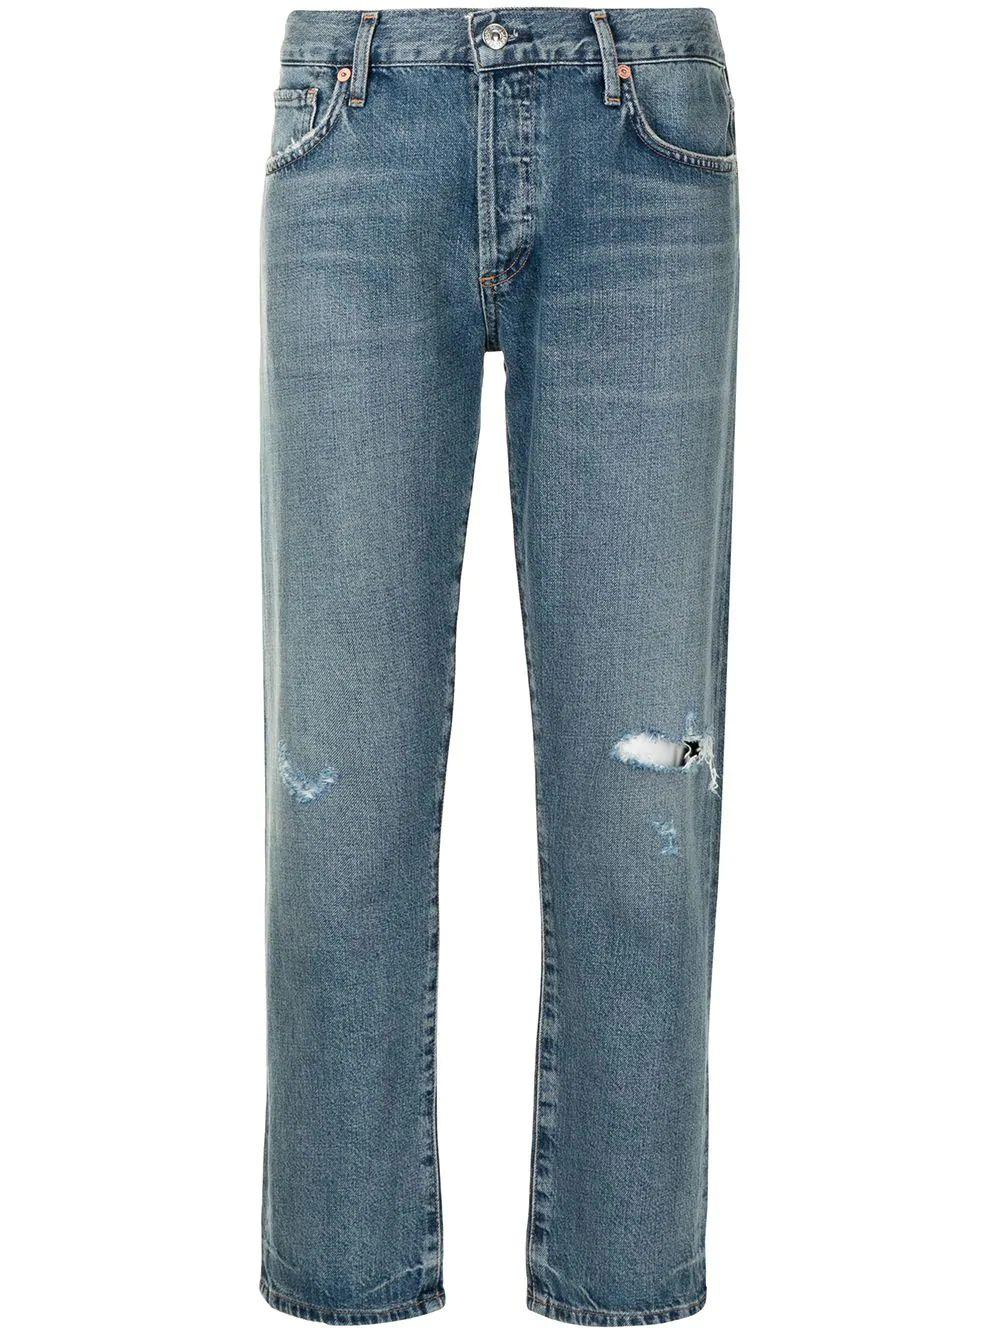 Emerson Distressed Cropped Jean Item # 1797-1292